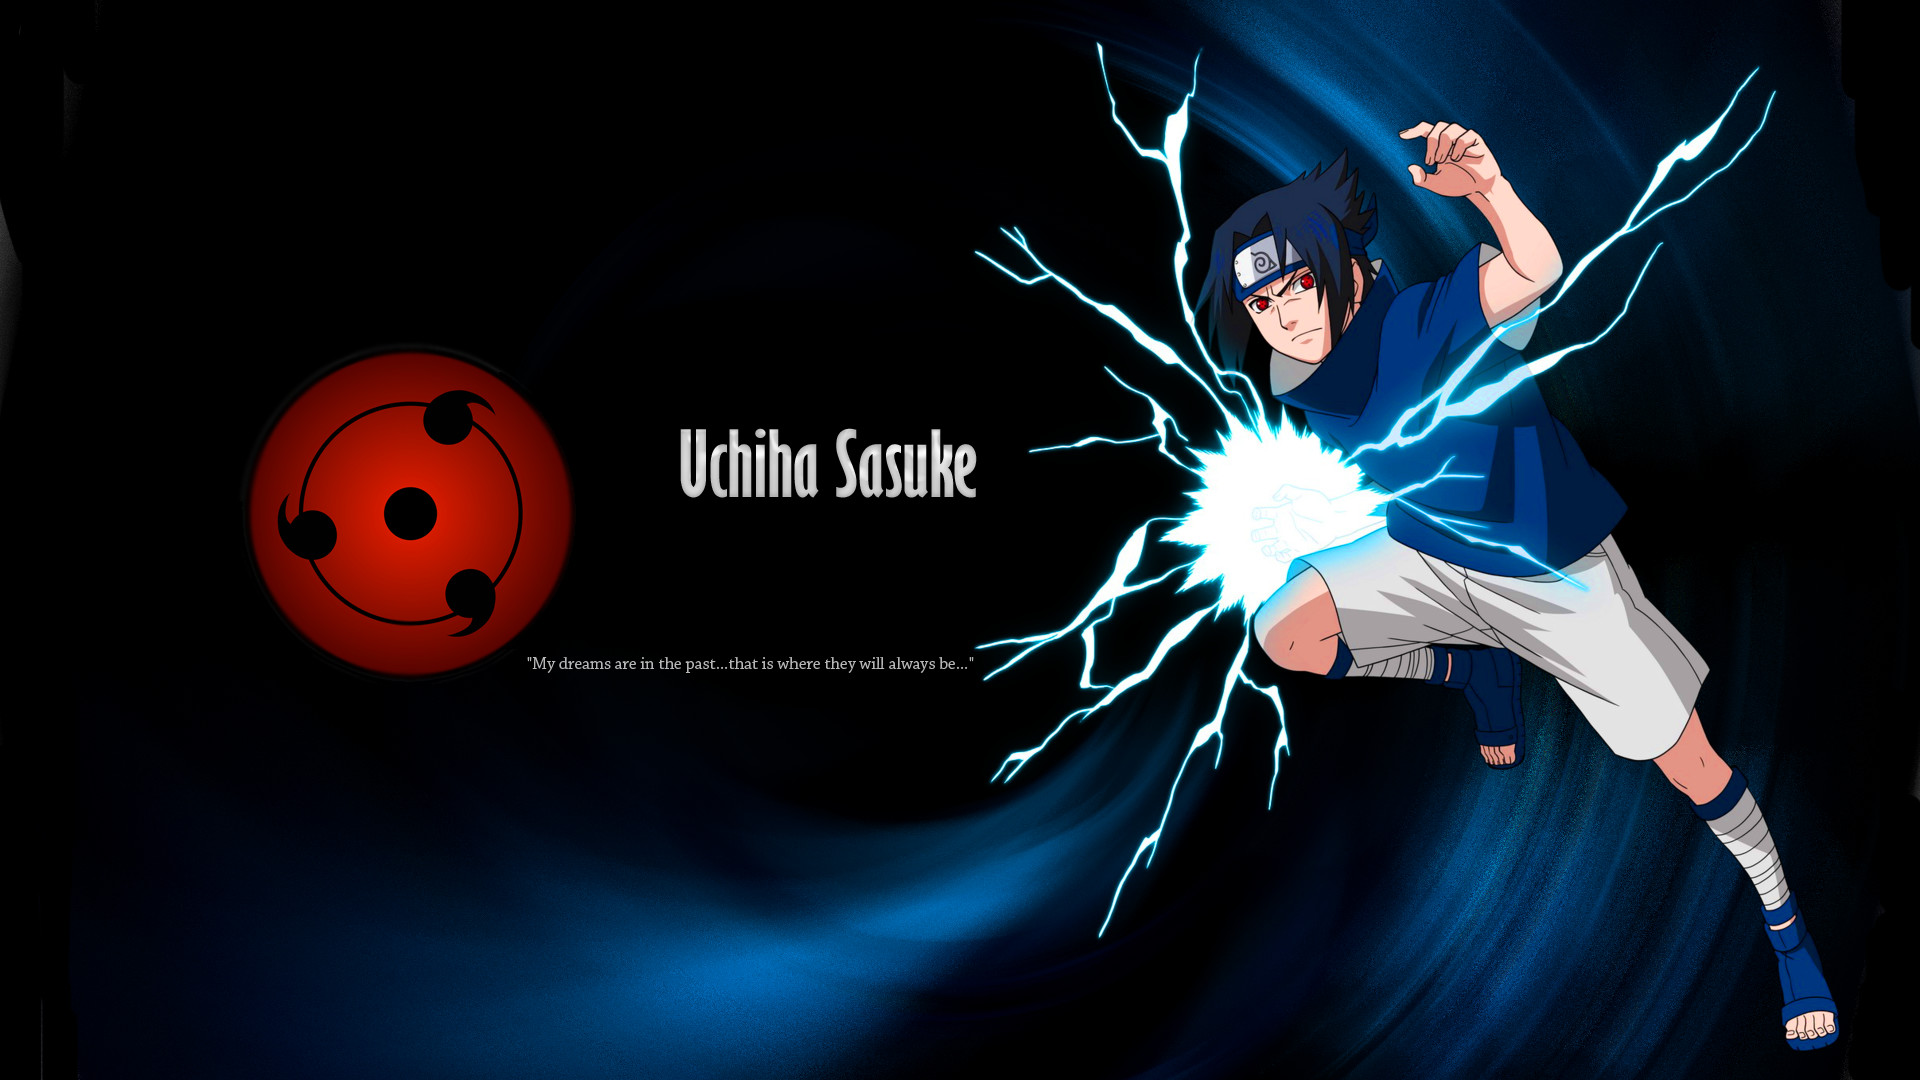 1920x1080 Naruto Wallpaper 22 | Airlines Wallpapers | Pinterest | Naruto wallpaper  and Naruto